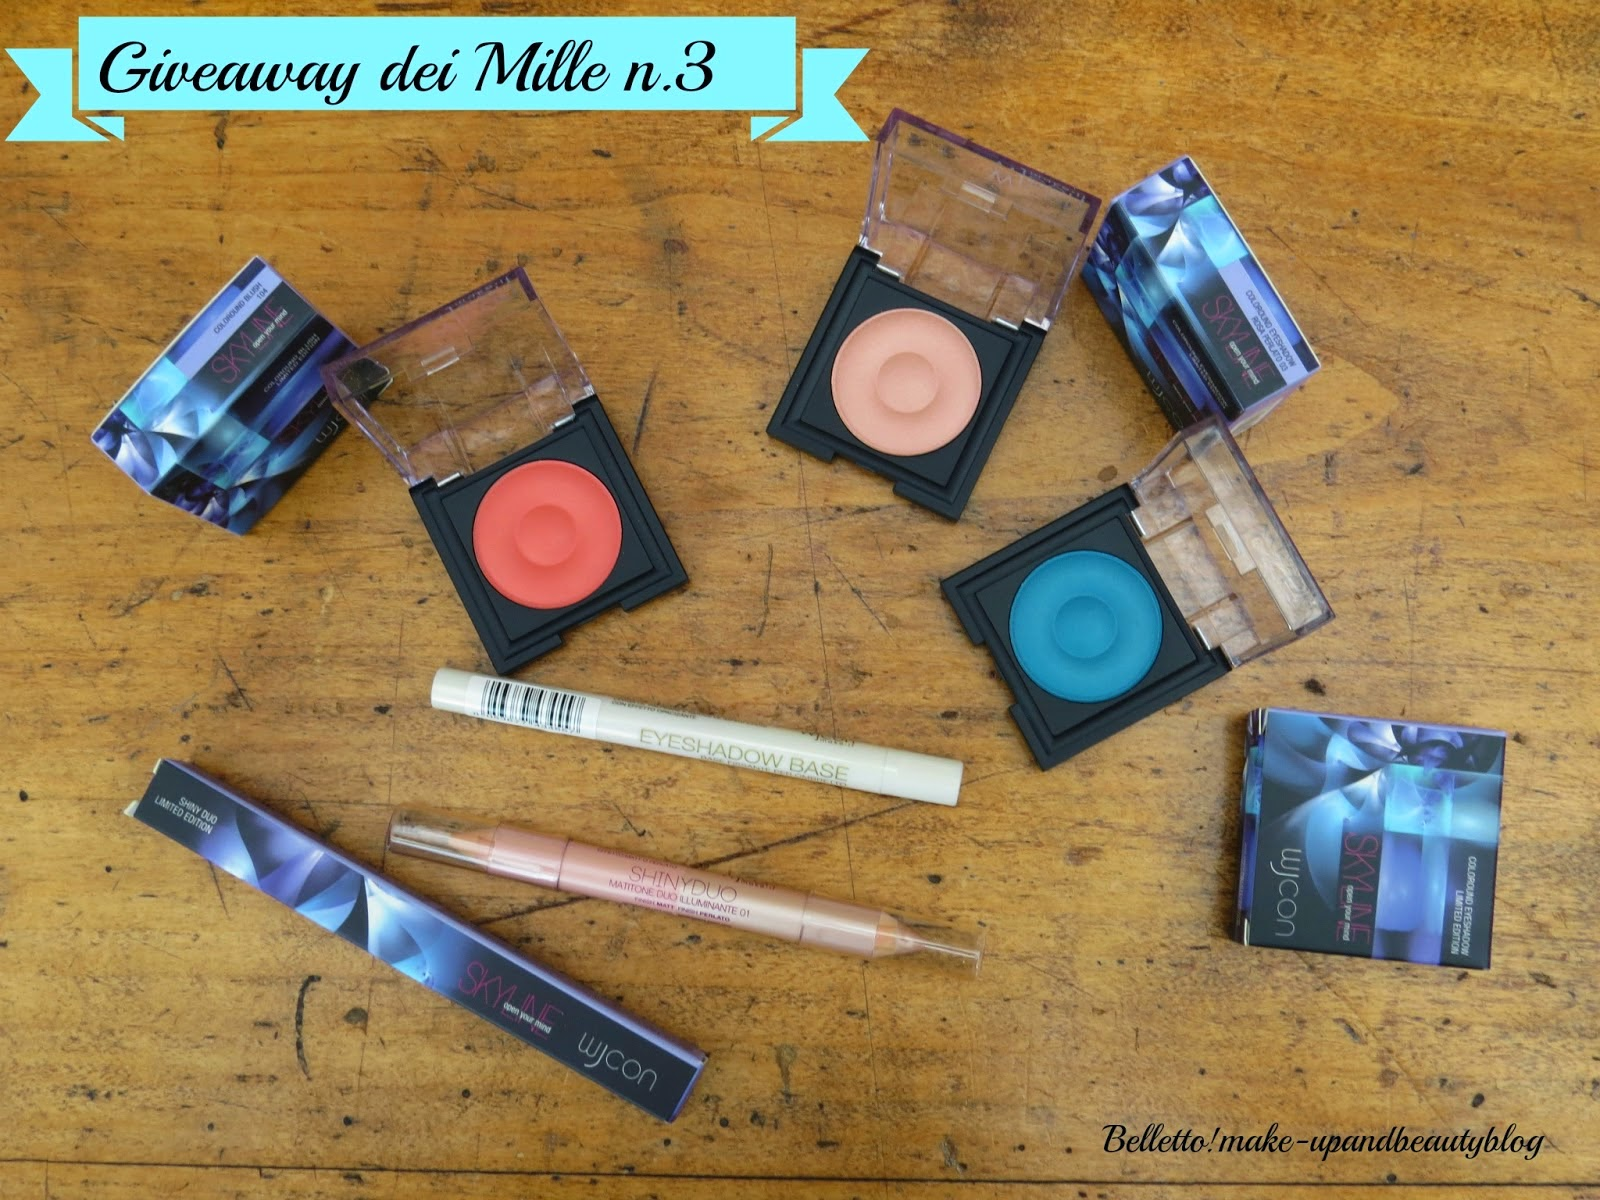 Giveaway dei Mille